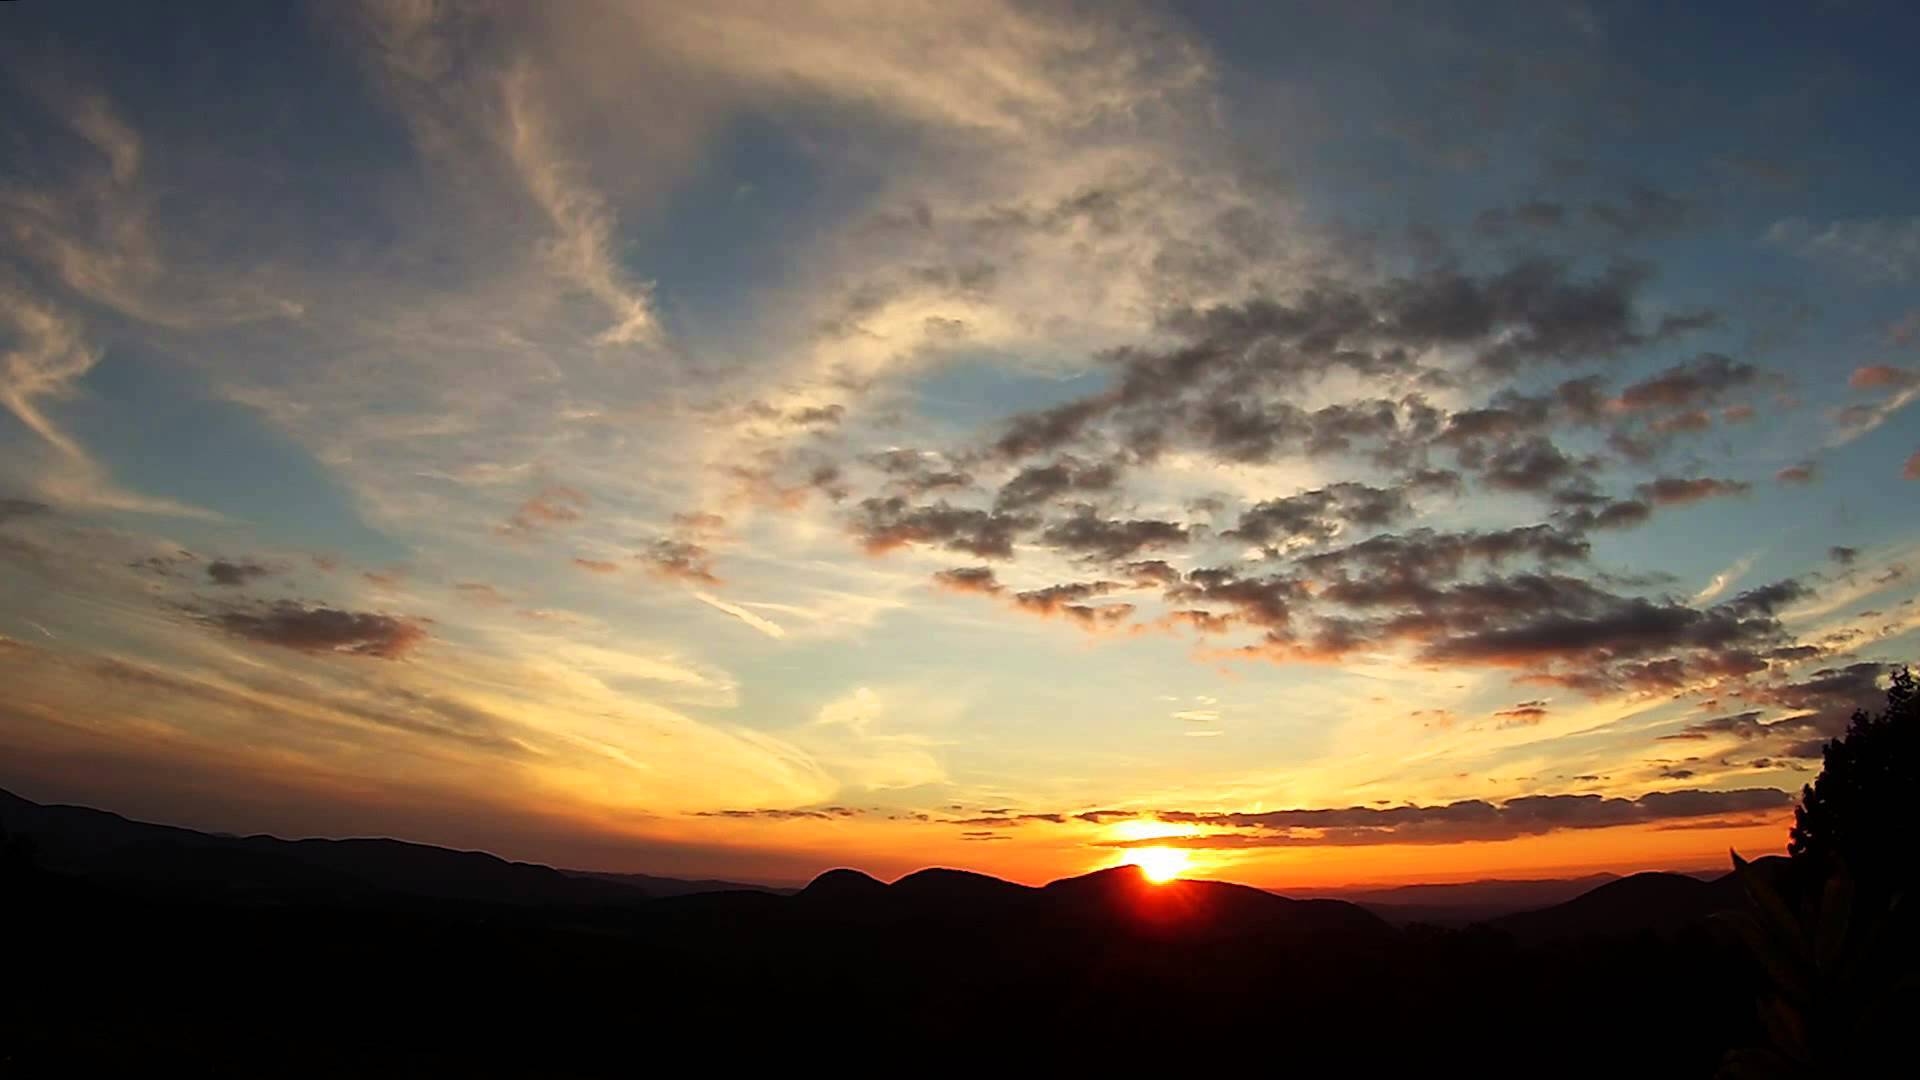 TIME LAPSE: Amazing HD Vermont Sunset, Sky and Clouds - YouTube